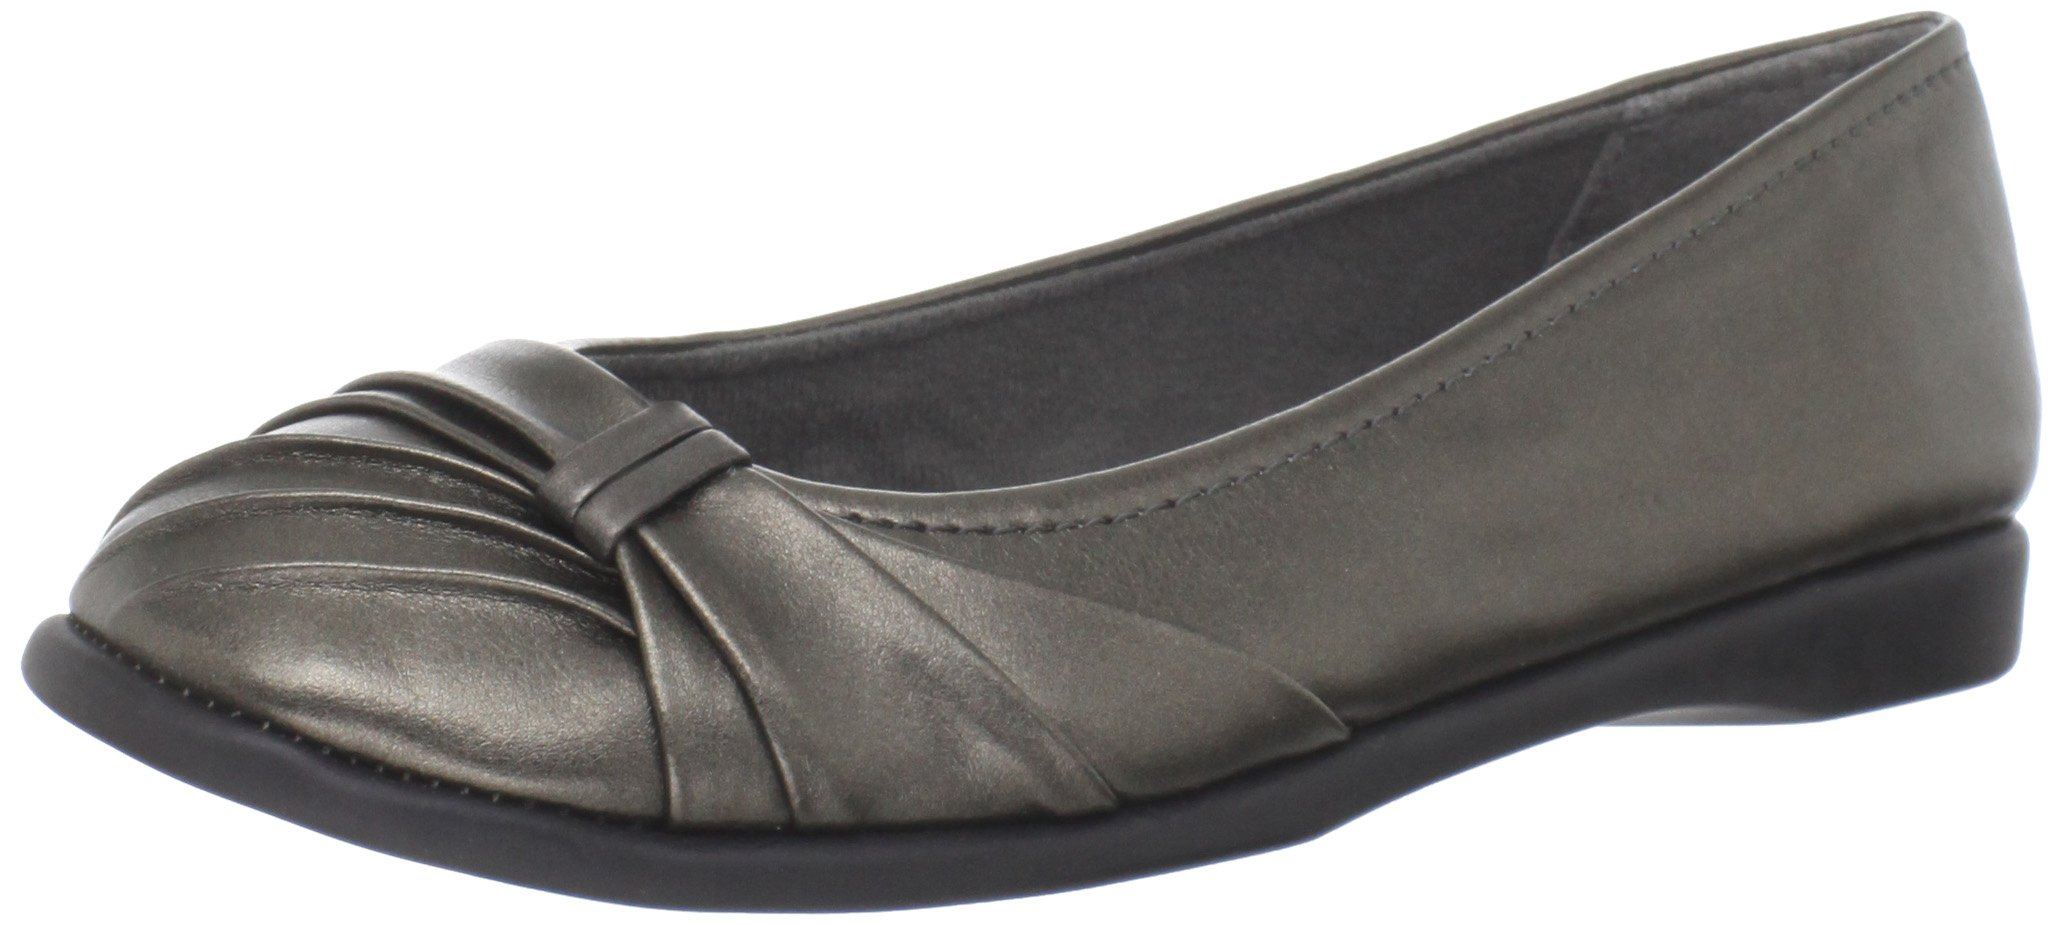 Easy Street Women's Giddy Ballet Flat,Pewter,6 M US